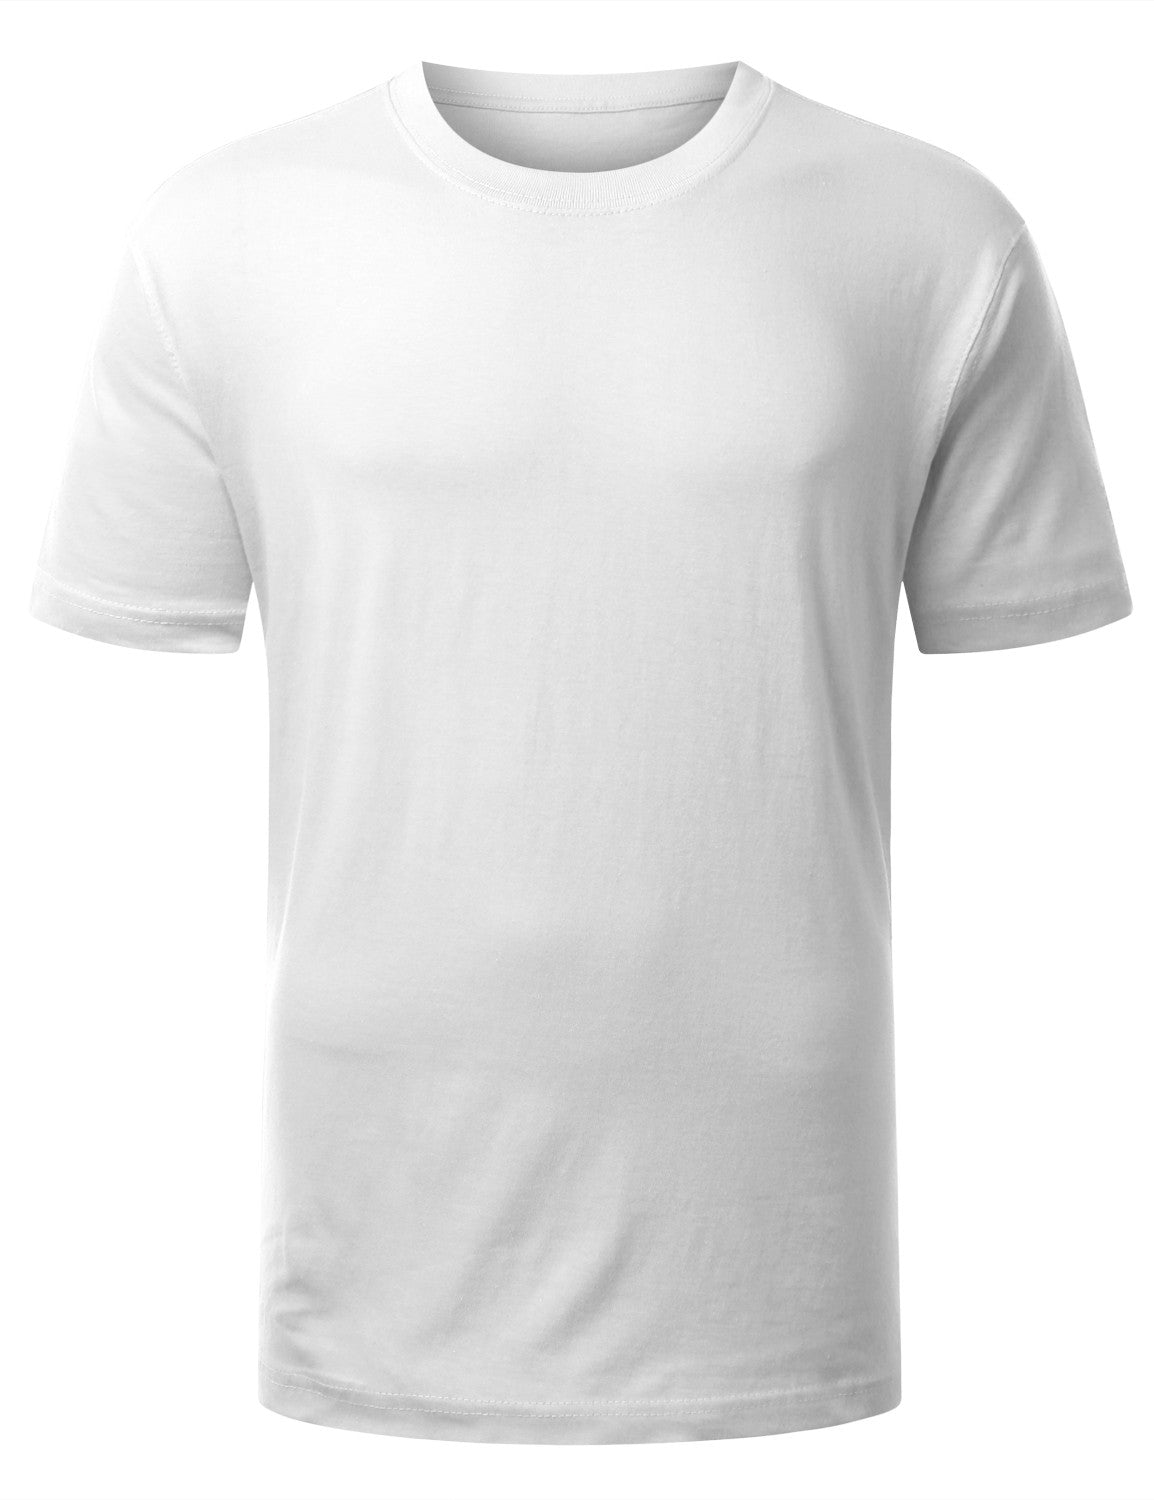 WHITE Classic Crewneck T Shirt - URBANCREWS